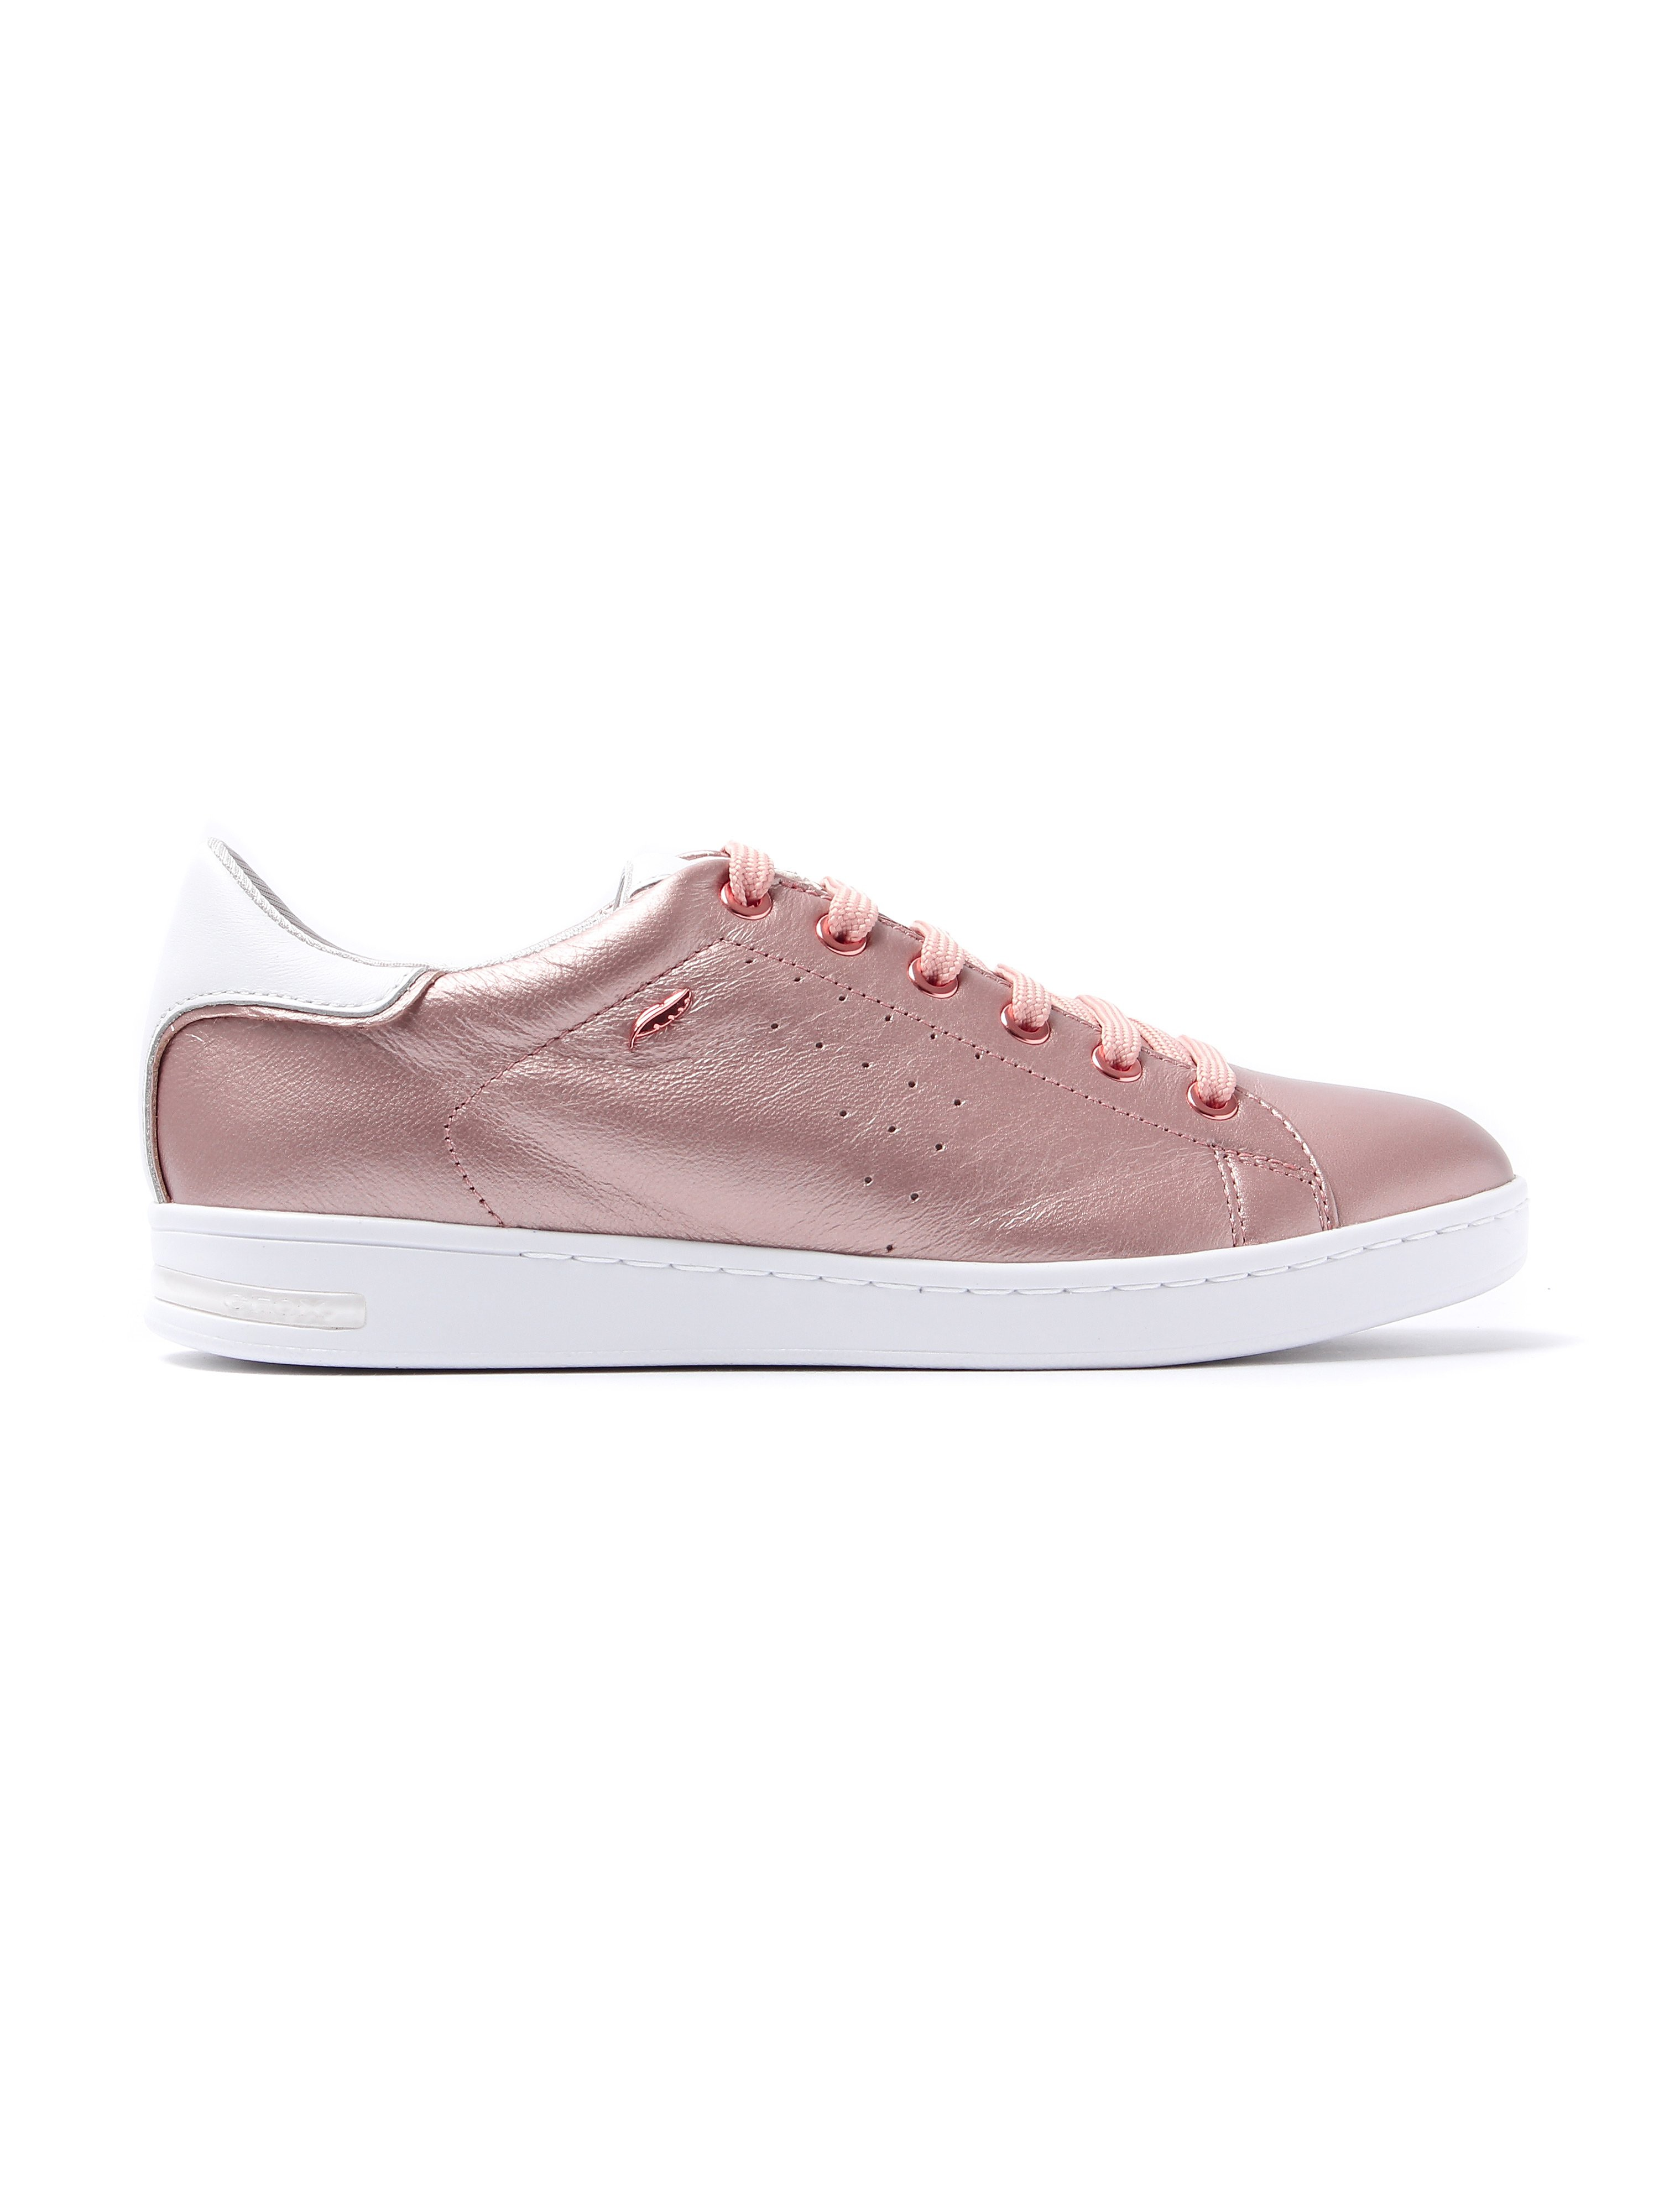 Geox Women's Jaysen Metallic Leather Trainers - Rose Gold